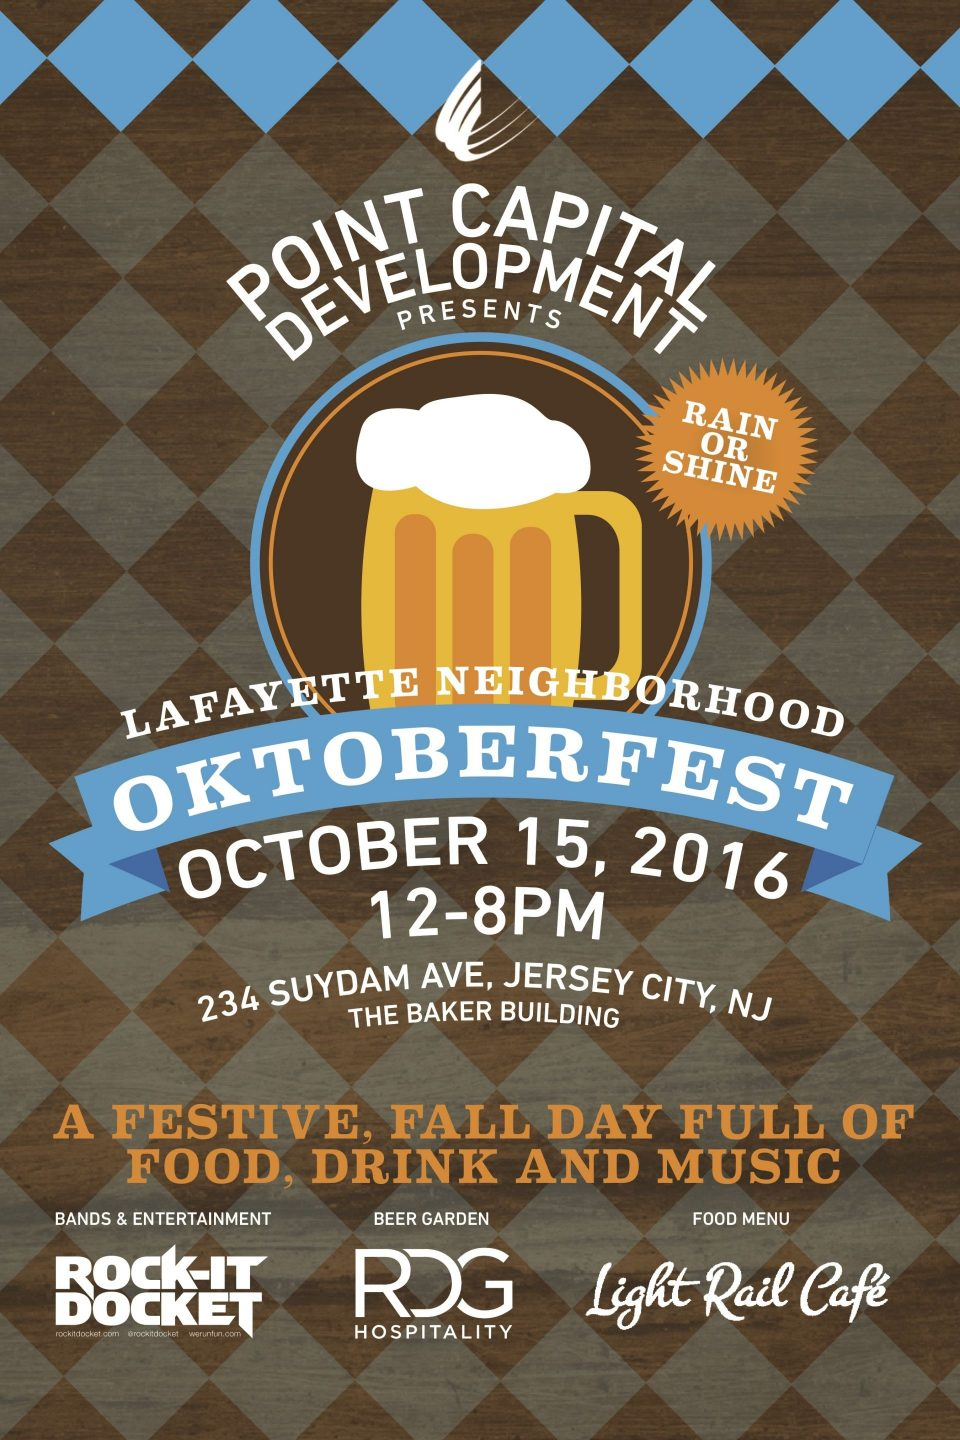 Lafayette Neighborhood Oktoberfest